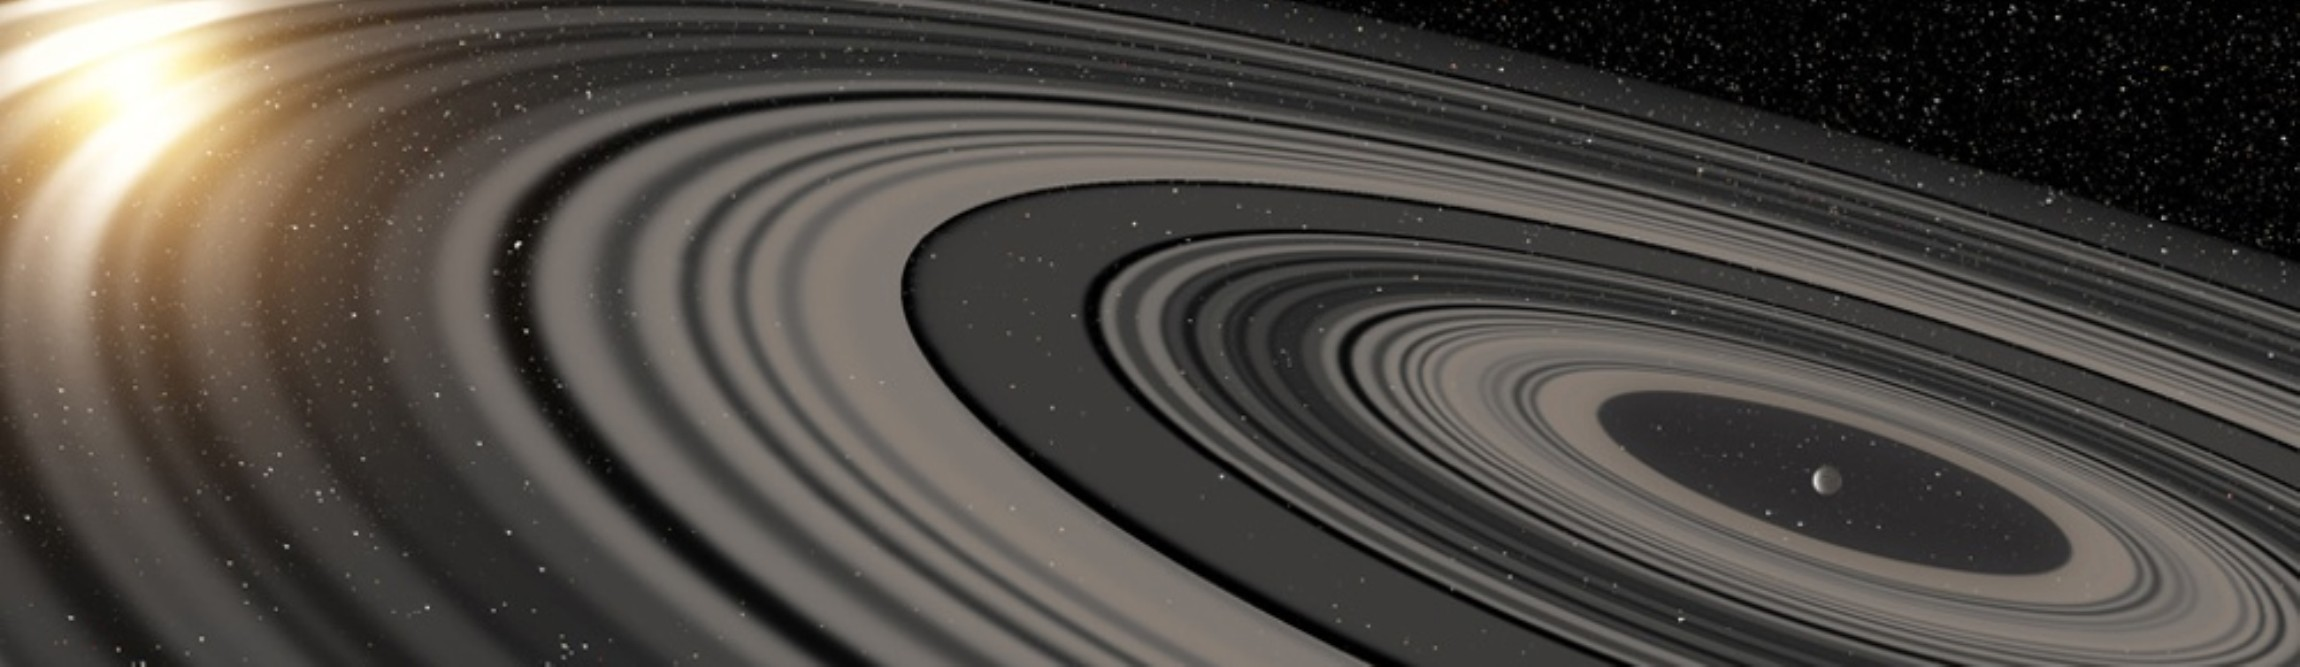 new planet saturn discovered with 200 times the ring of saturn